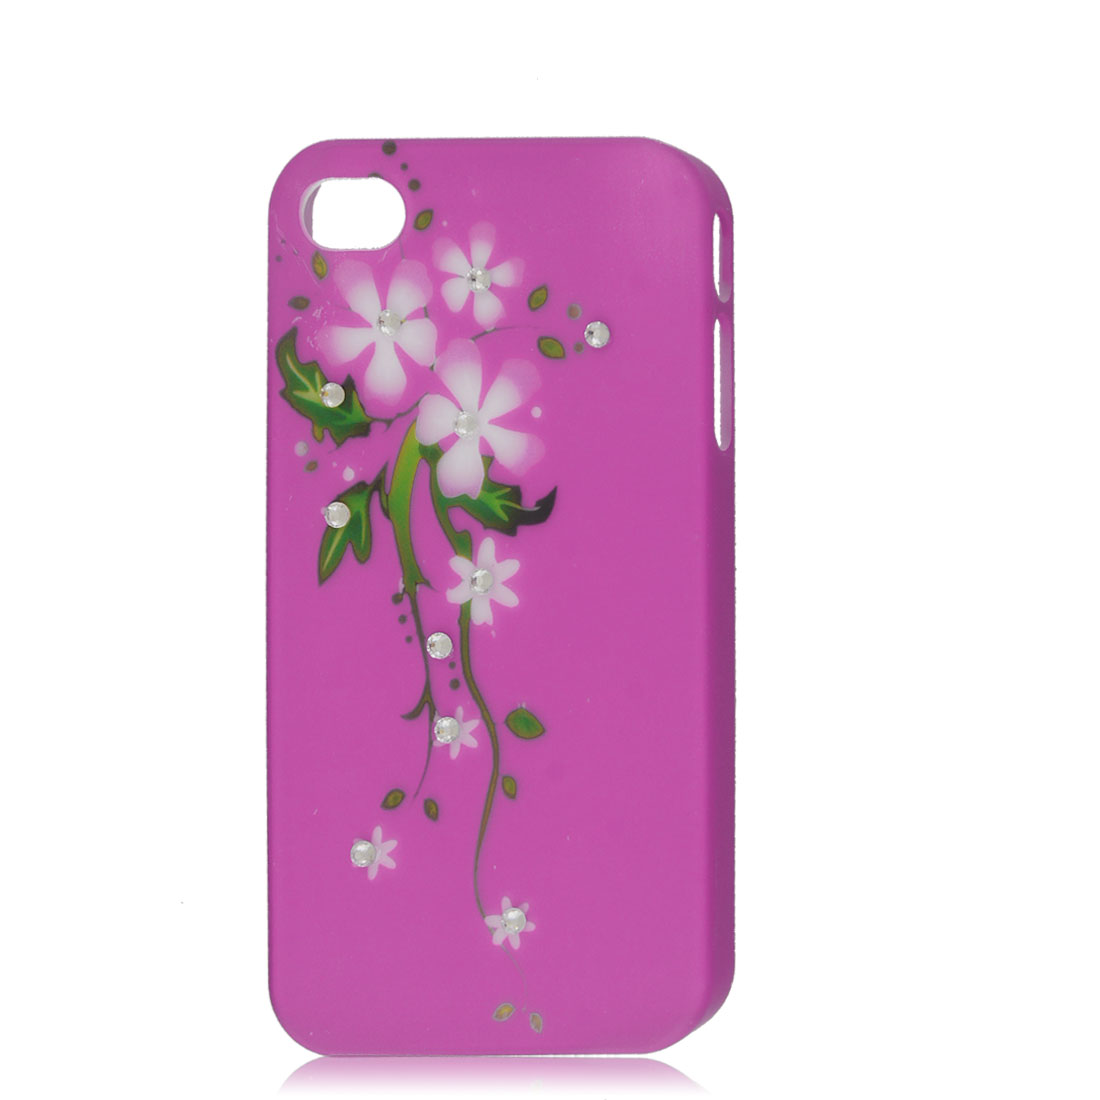 Fuchsia Bling Glitter Rhinestone Flower Hard Back Case Cover for Apple iPhone 4G